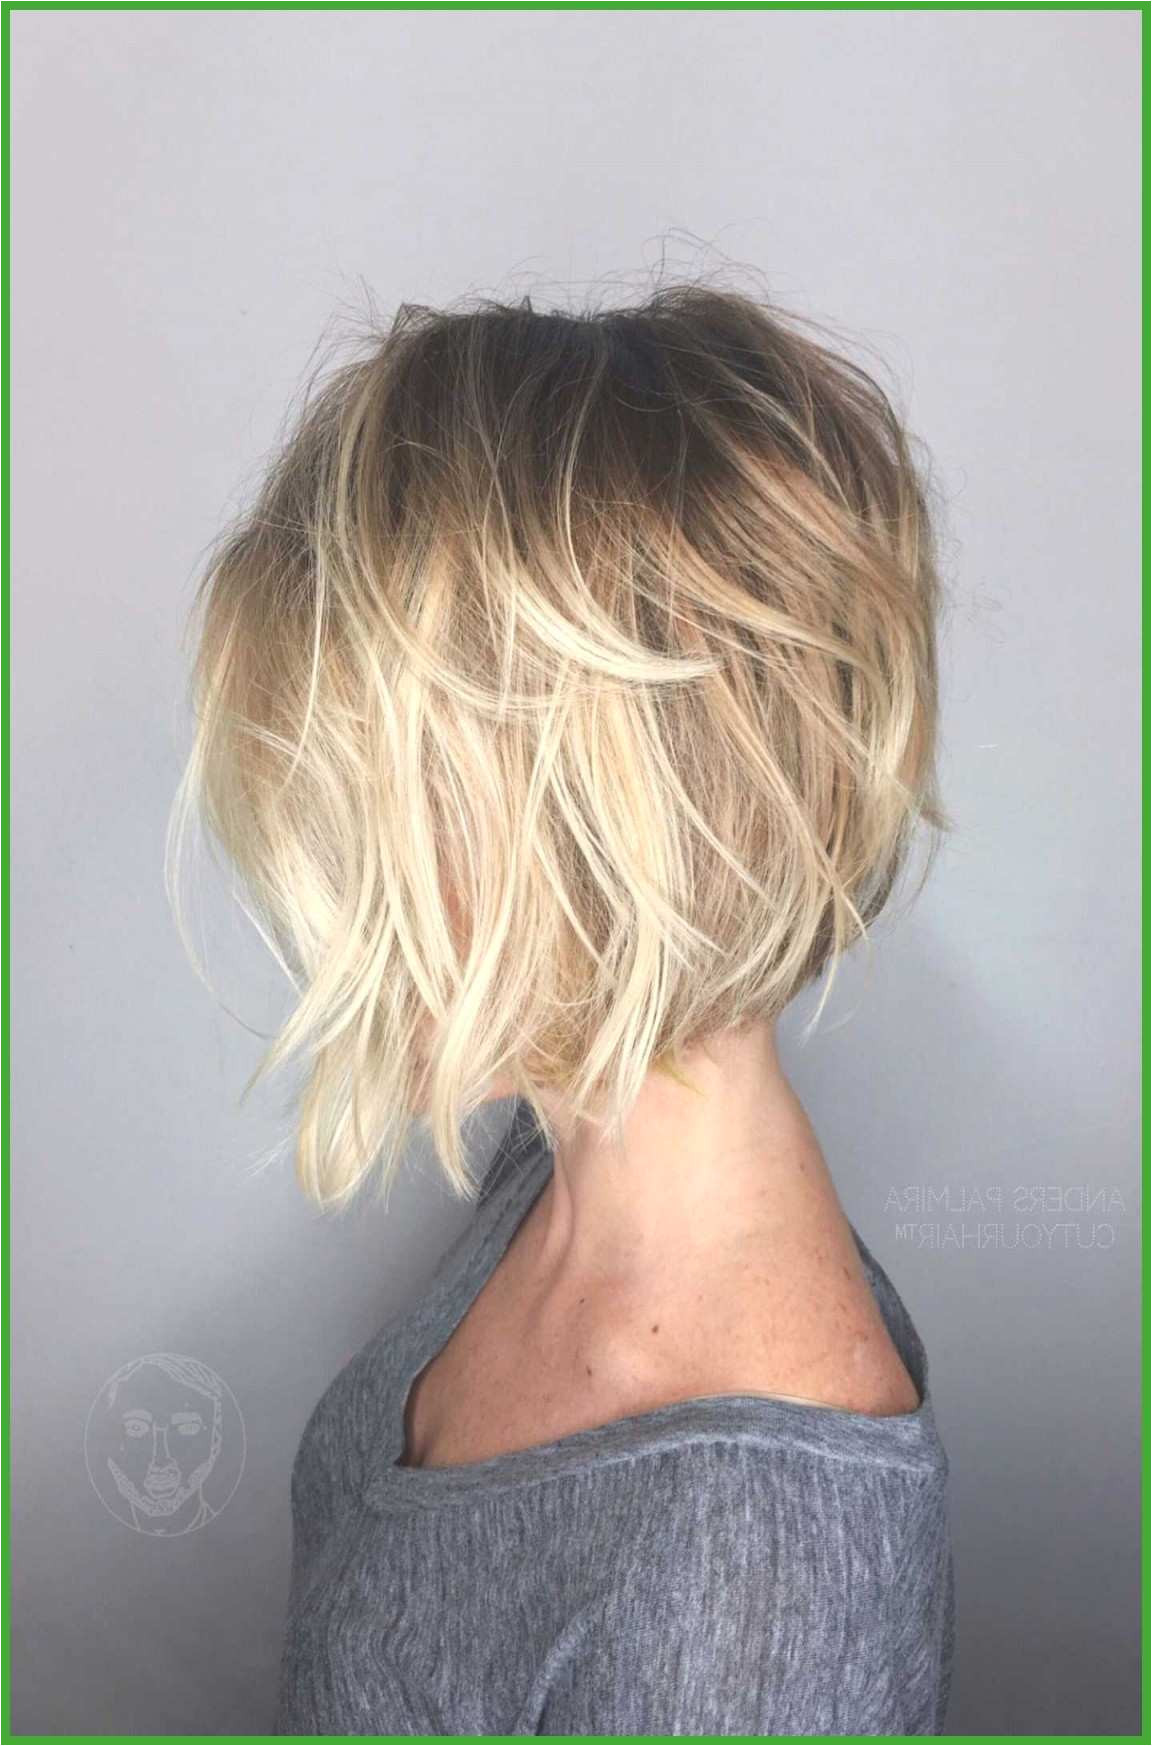 Blonde Hair for asians Luxury Short Blonde Hair Collection Short Haircut for Thick Hair 0d